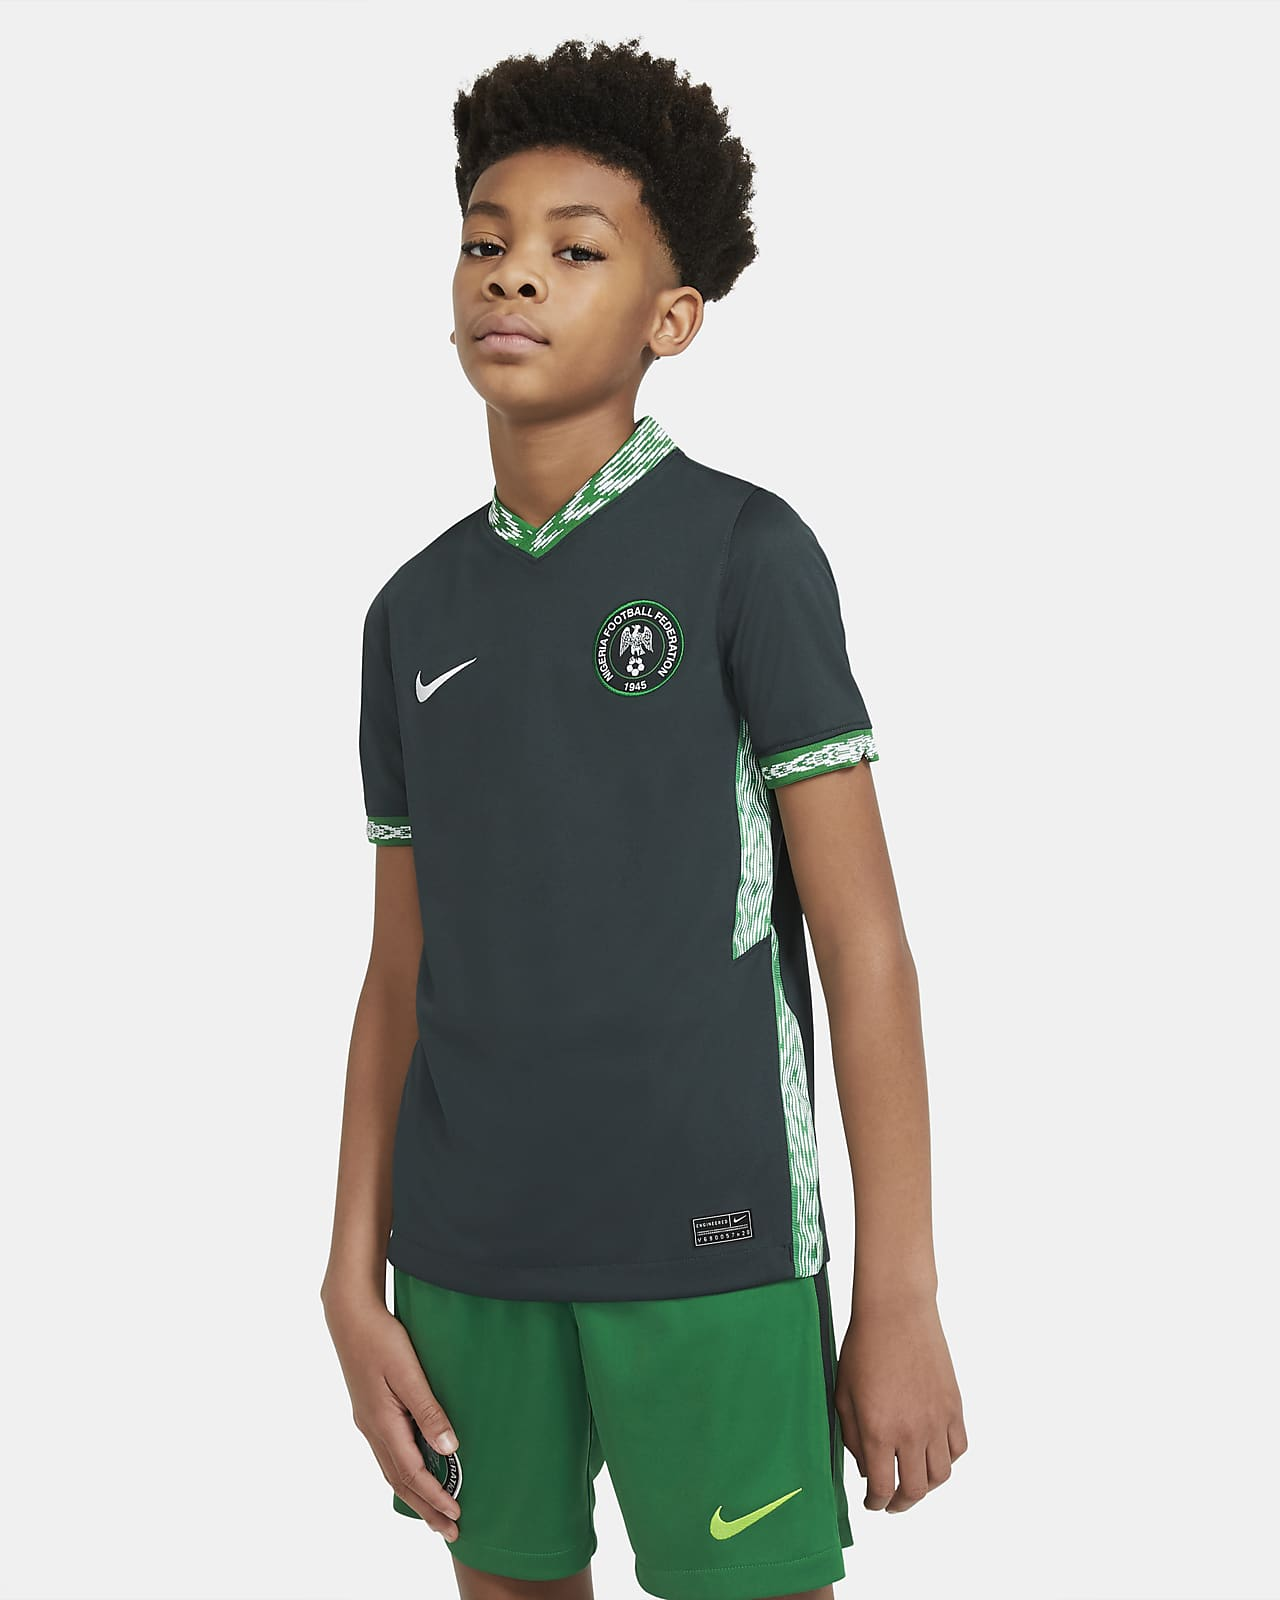 Camisola de futebol do equipamento alternativo Stadium Nigéria 2020 Júnior